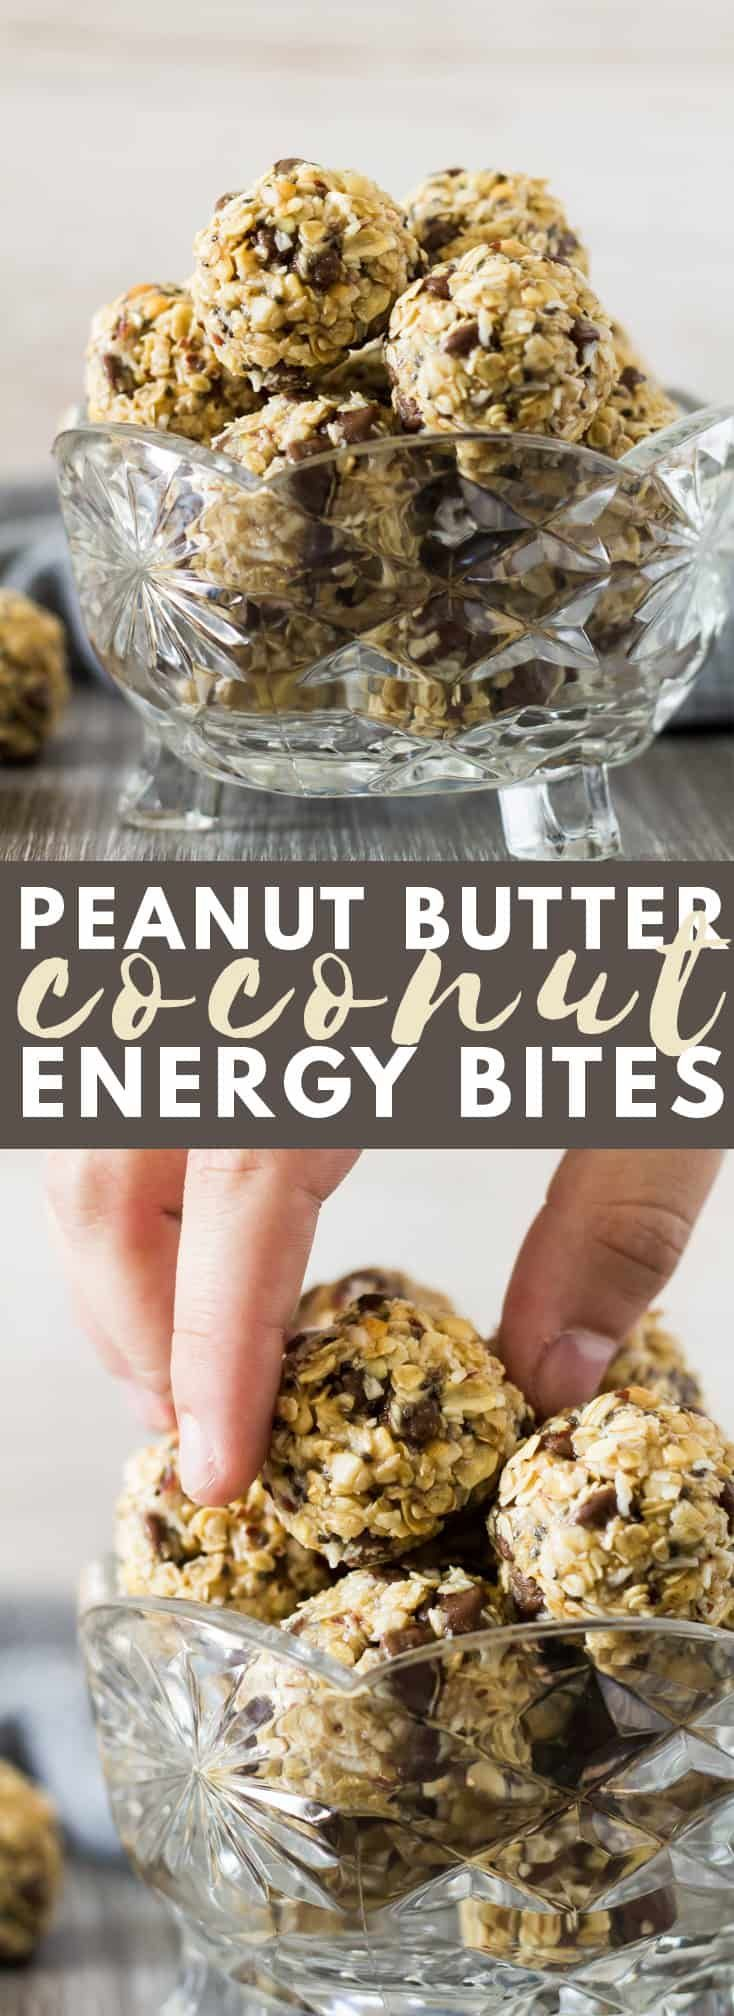 No-Bake Peanut Butter Coconut Energy Bites | Marsha's Baking Addiction